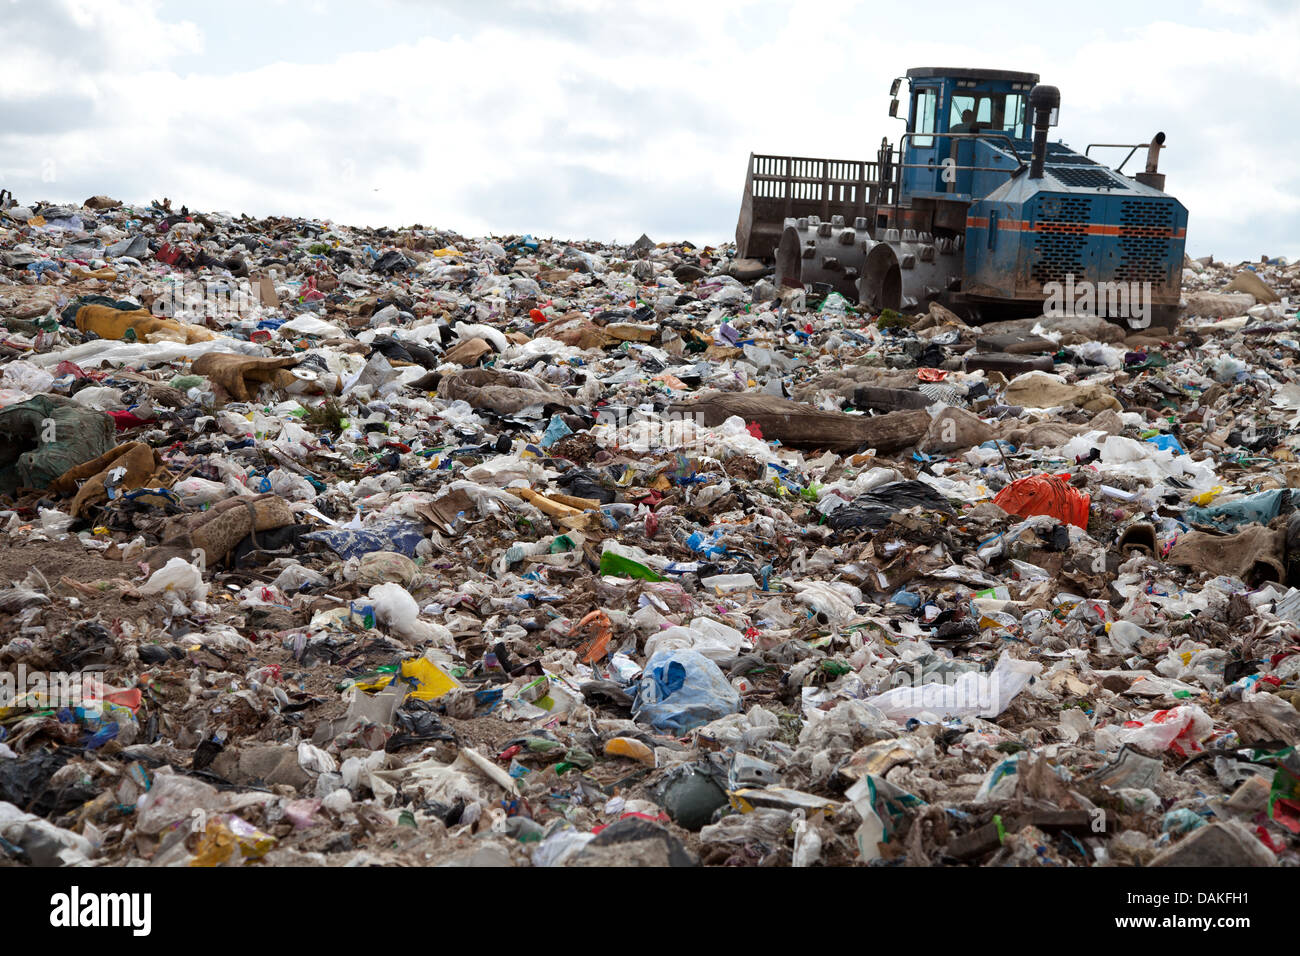 Garbage piles up in landfill site each day while truck covers it with sand for sanitary purpose - Stock Image